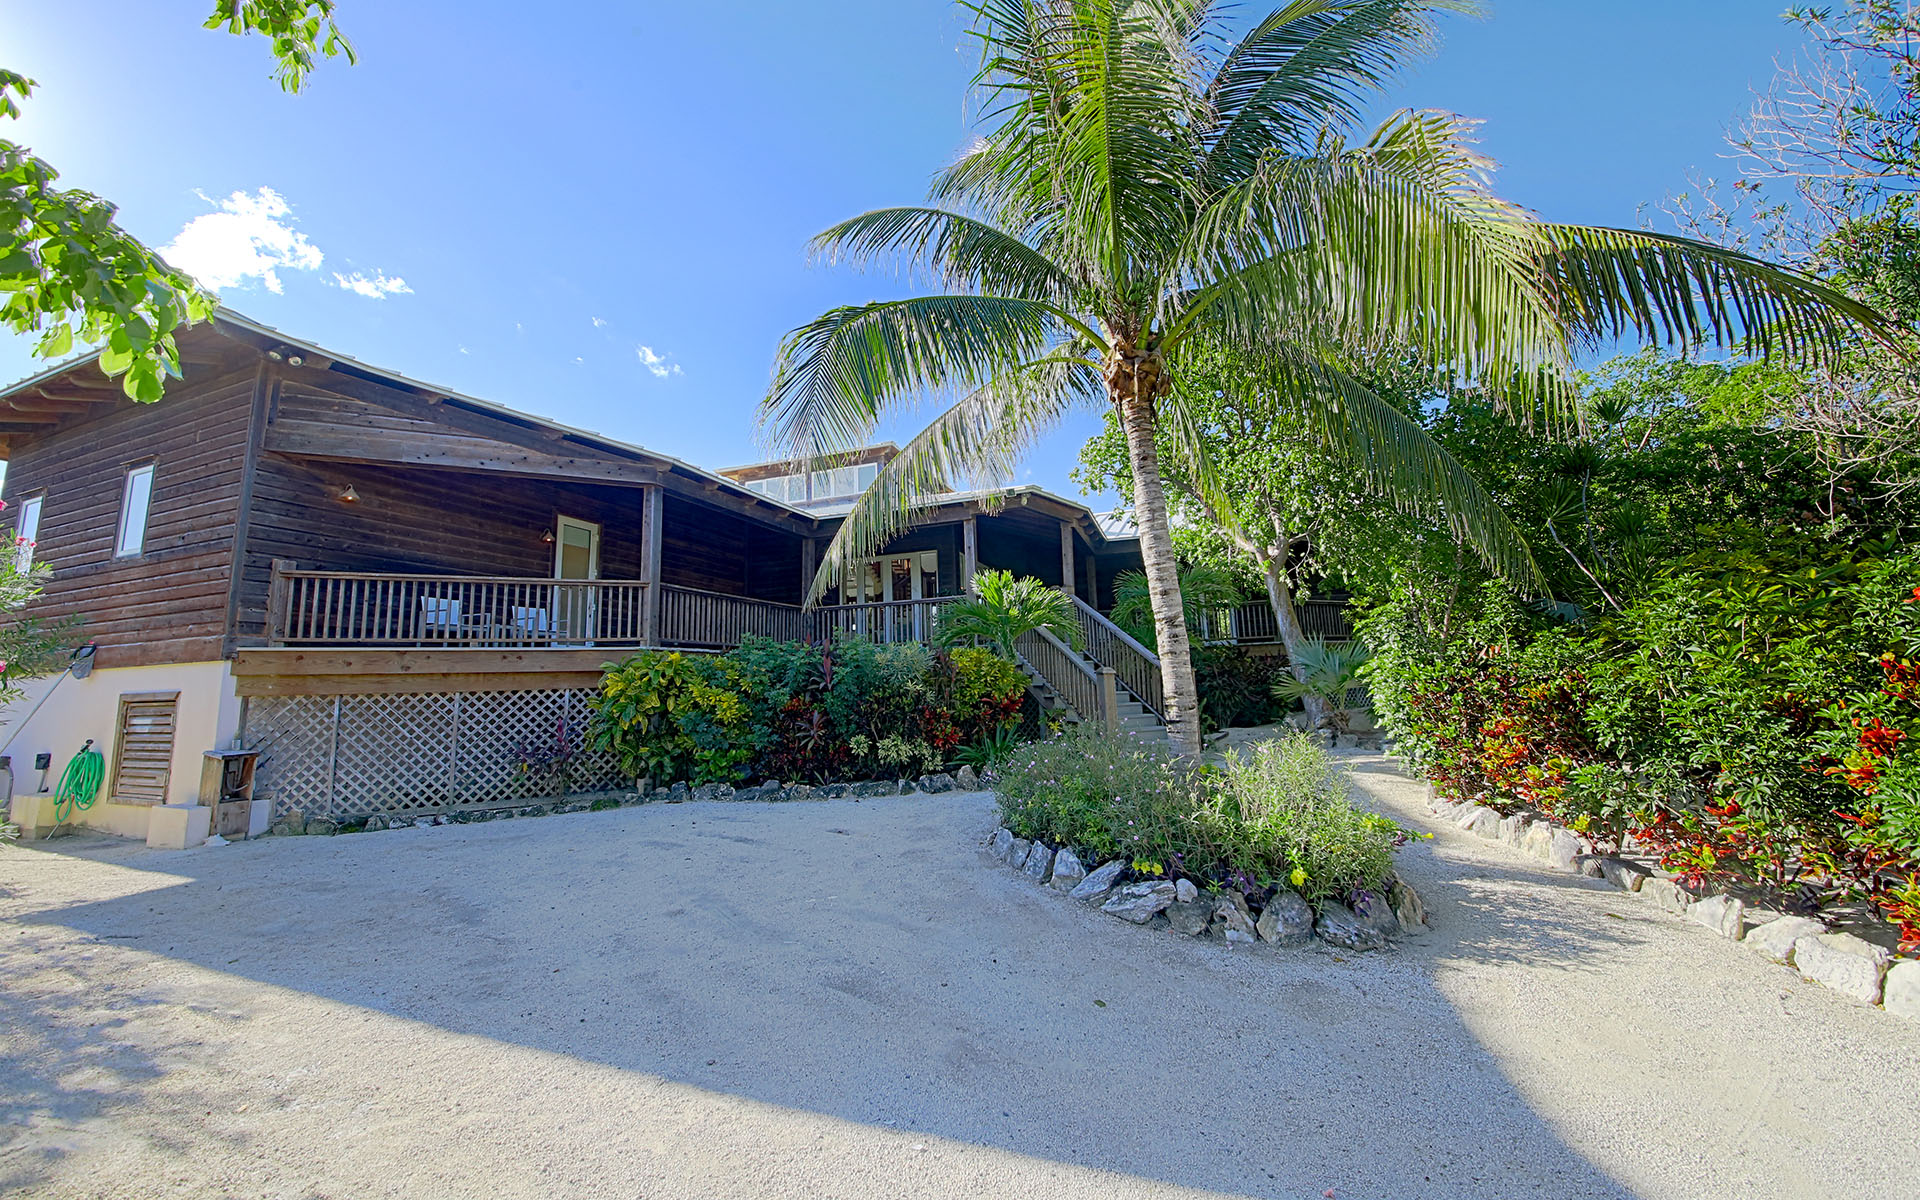 Green Turtle - Winding Bay - MLS 31750 Abaco, Bahamas